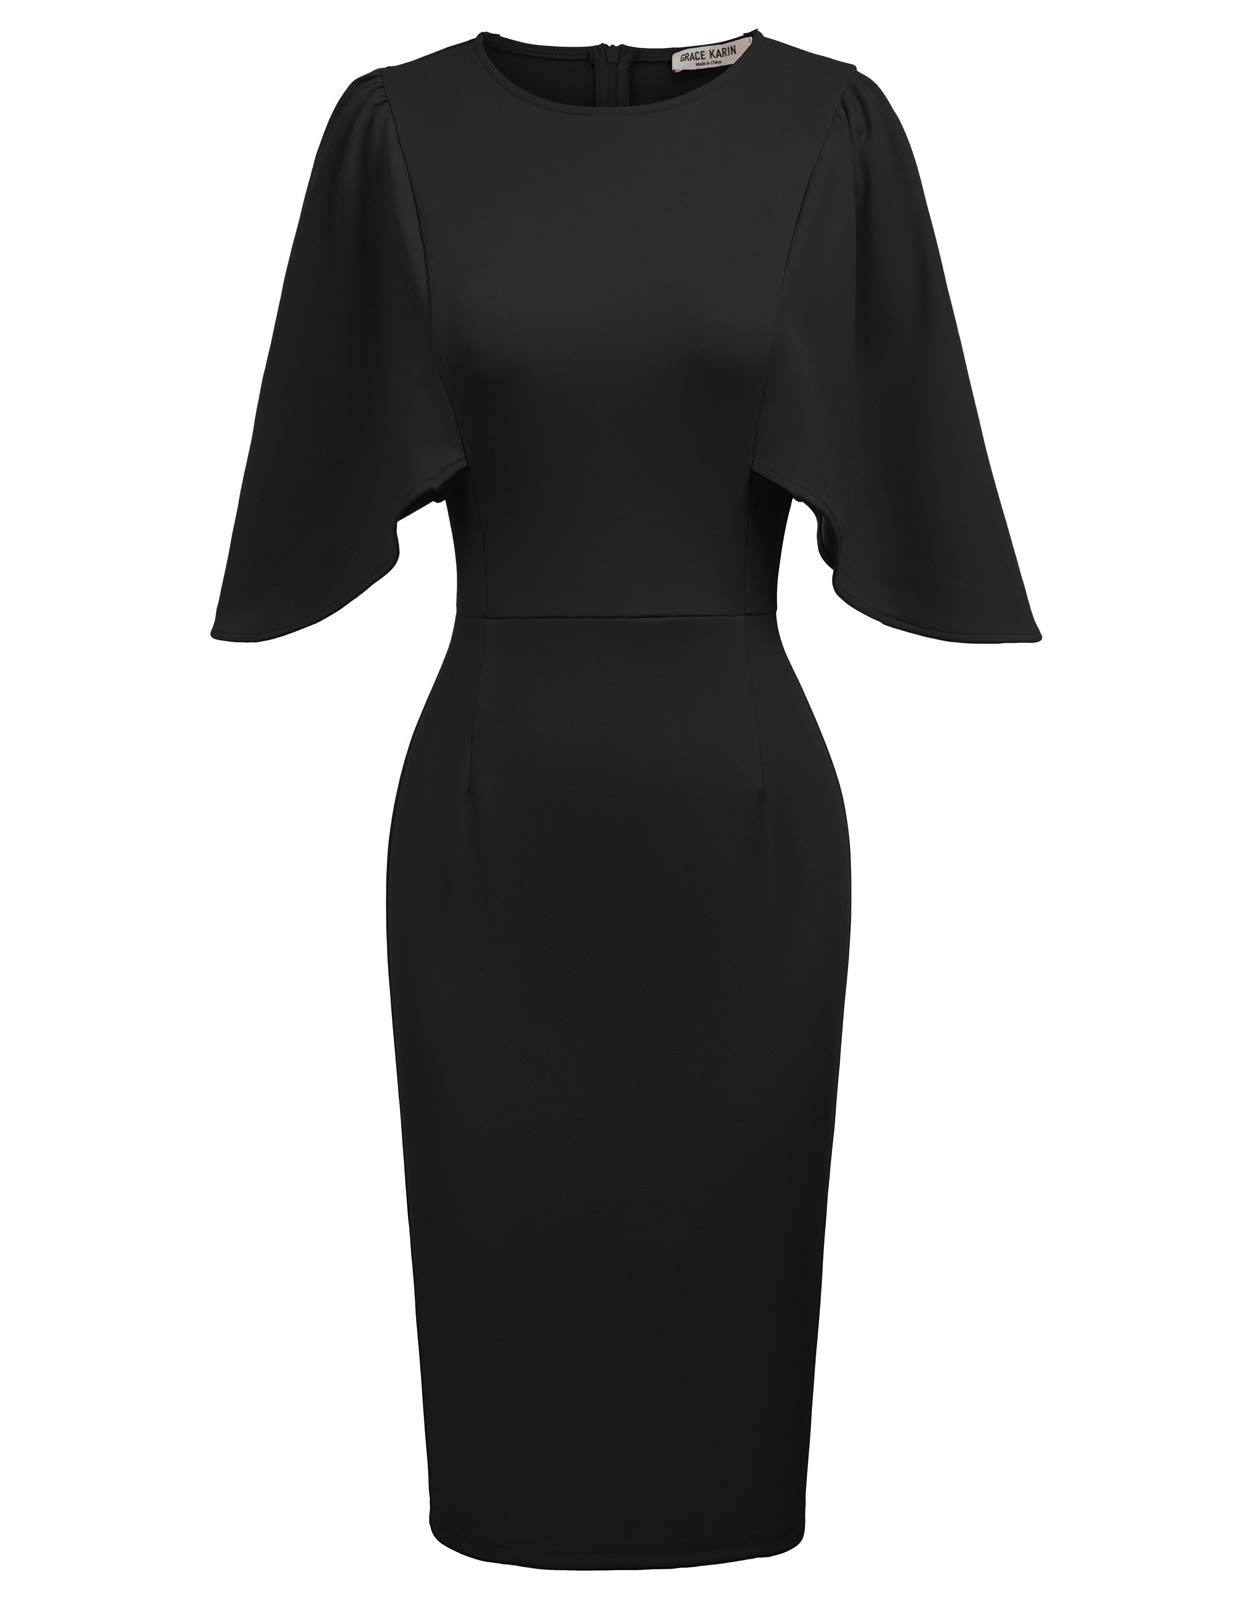 GRACE KARIN Women 3/4 Ruffle Sleeve Slim Fit Business Pencil Dress